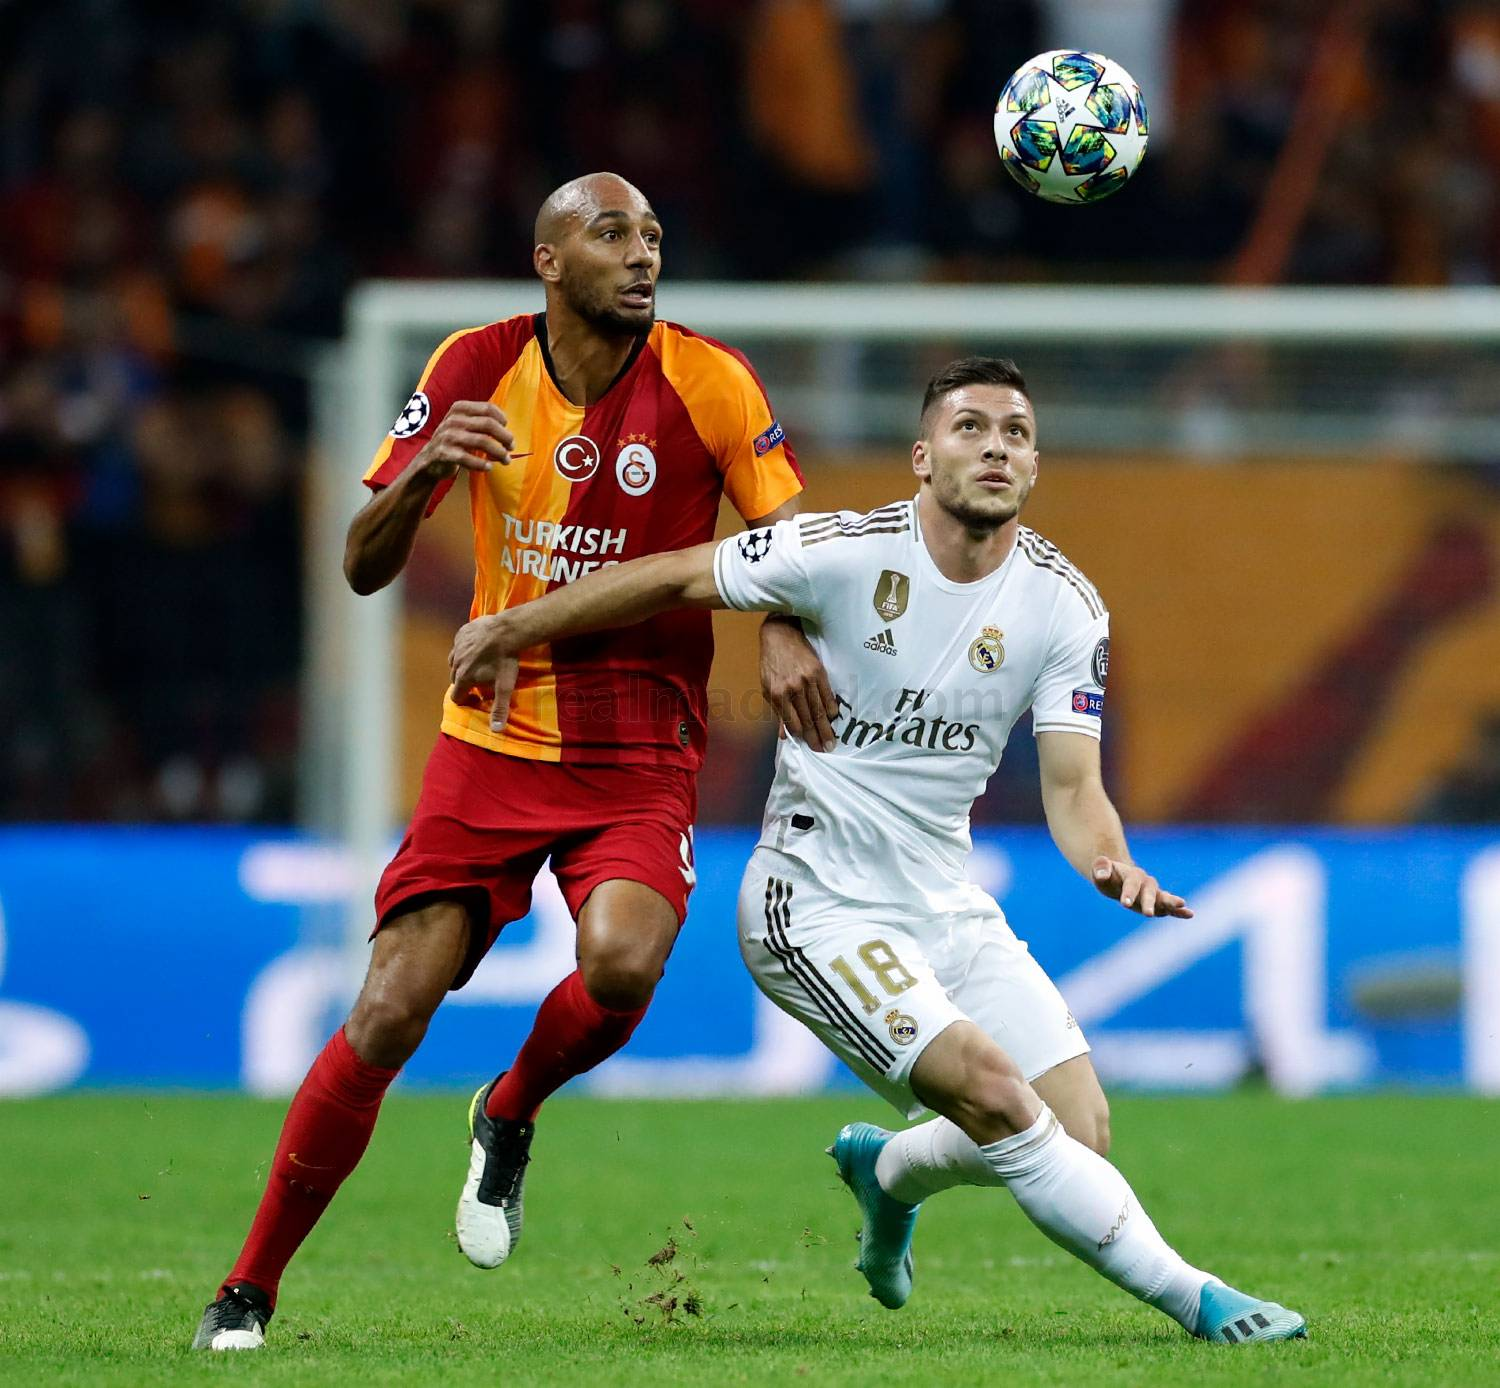 Real Madrid - Galatasaray - Real Madrid - 22-10-2019